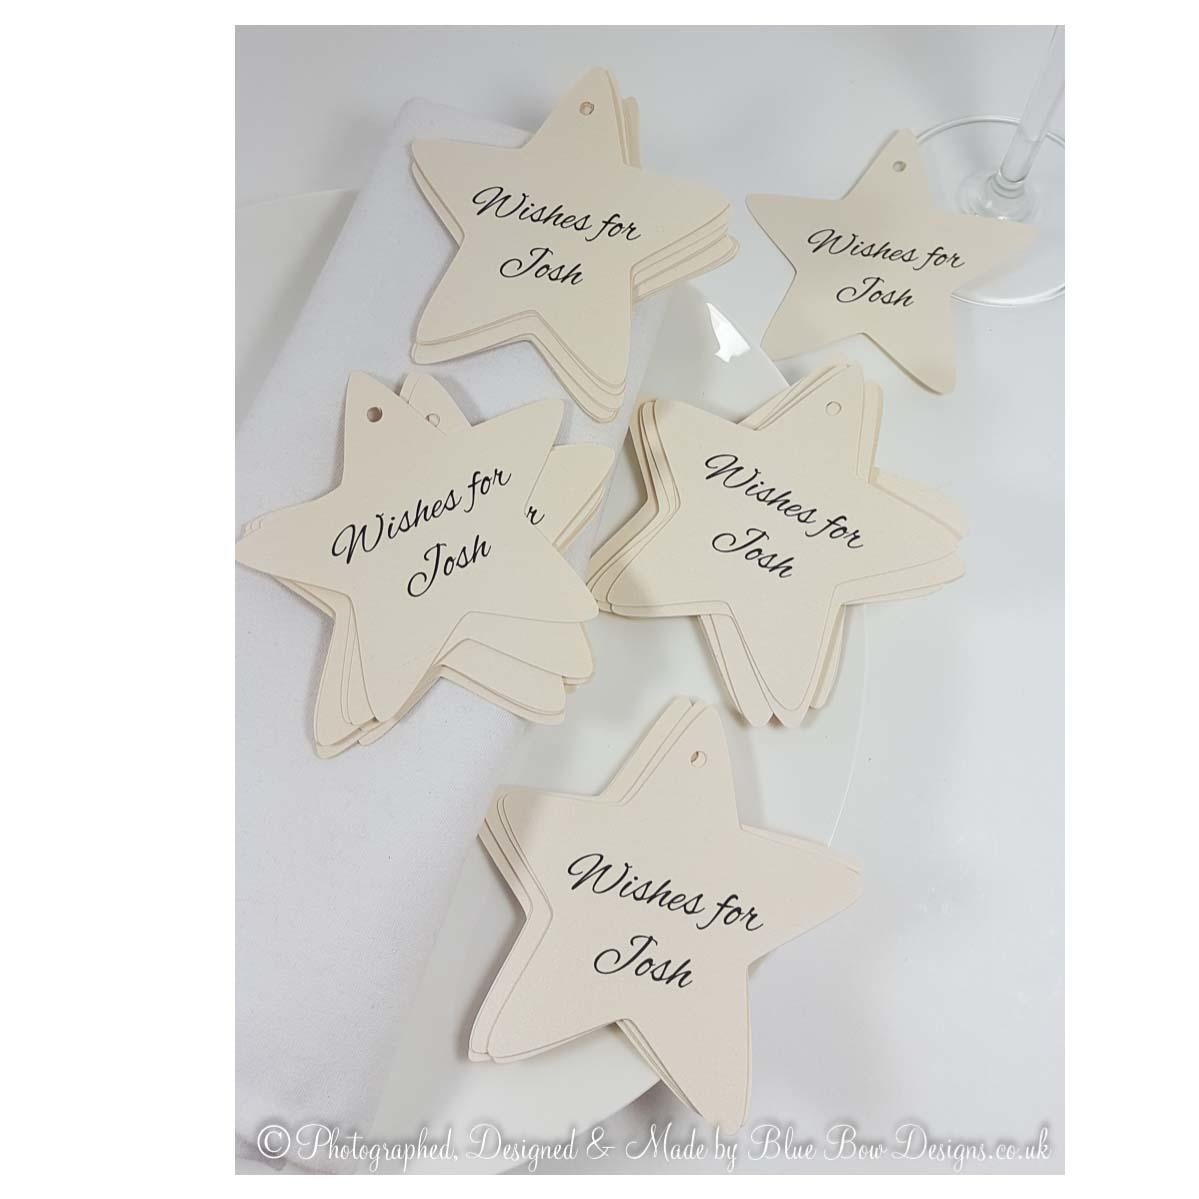 Personalised star shaped tags